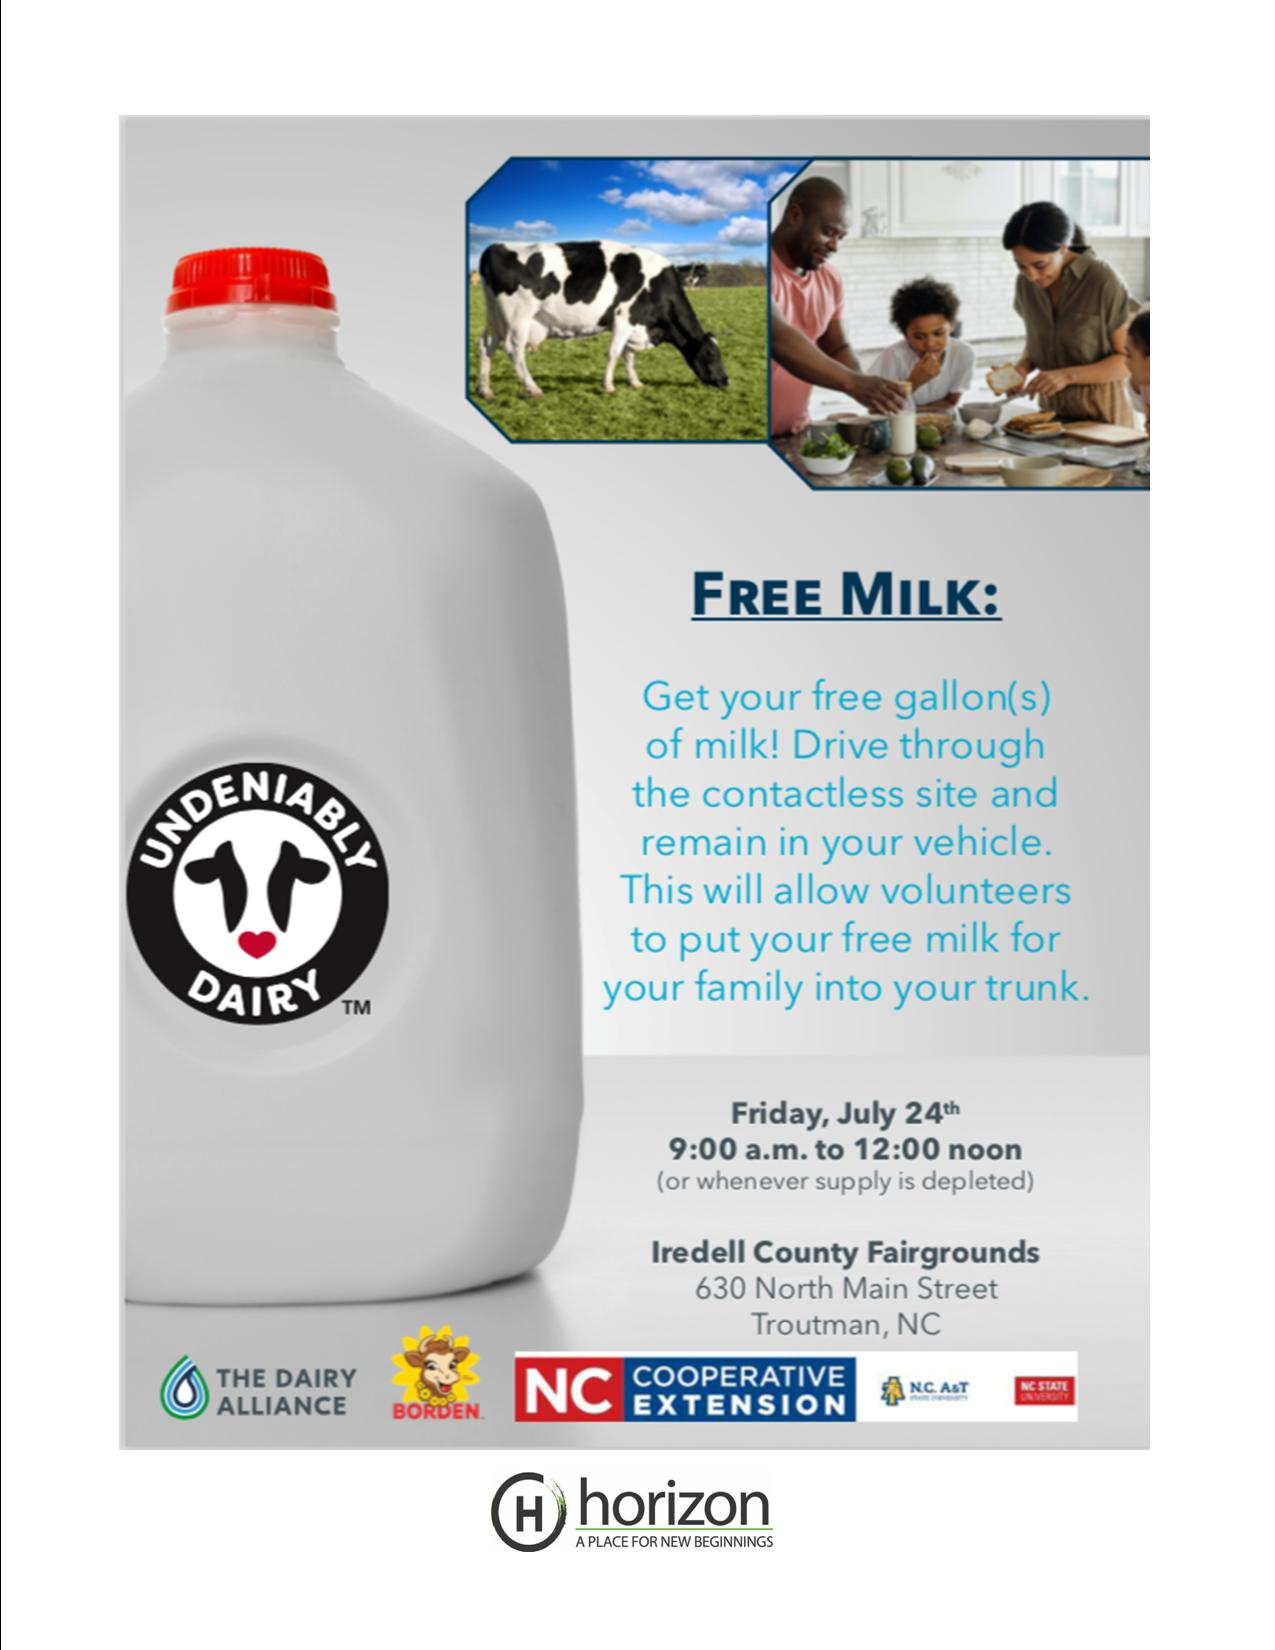 Large Gallon of Milk with Cows and Children in the background